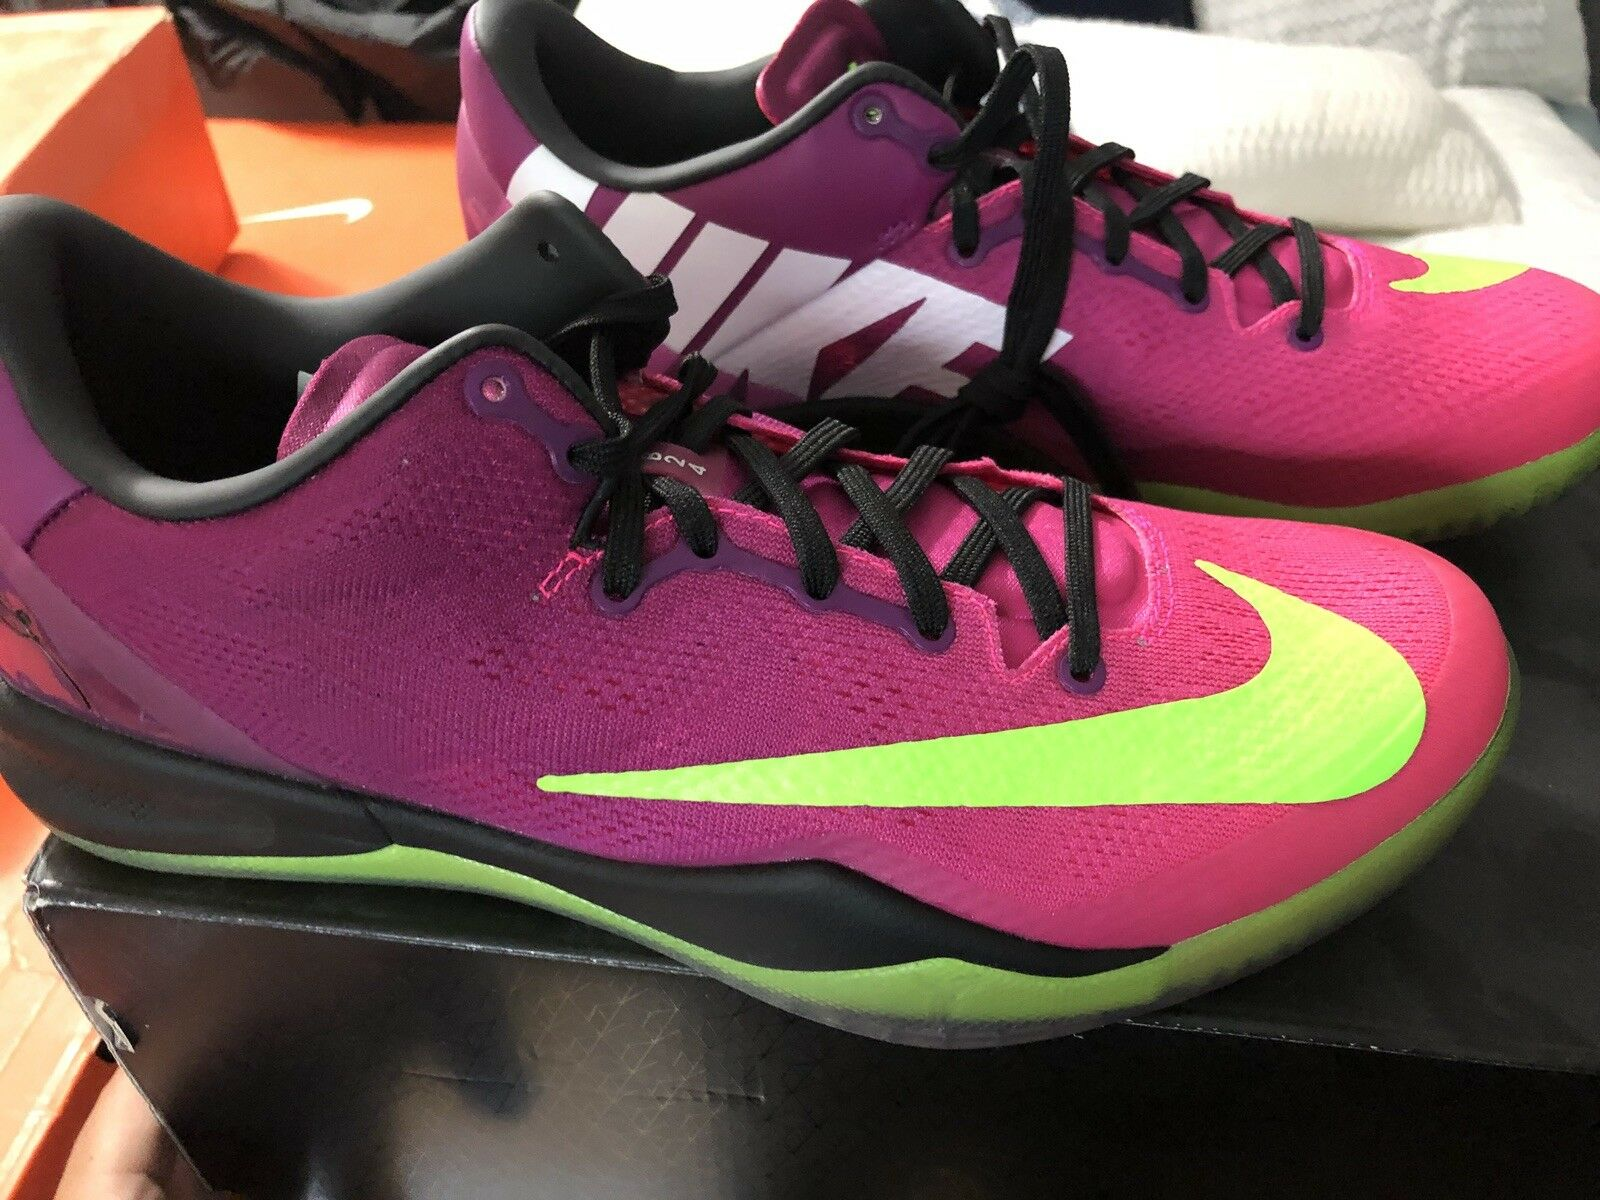 NIKE ZOOM KOBE VIII 8 SYSTEM MC MAMBACURIAL RED PLUM VOLT PINK 615315-500 9.5